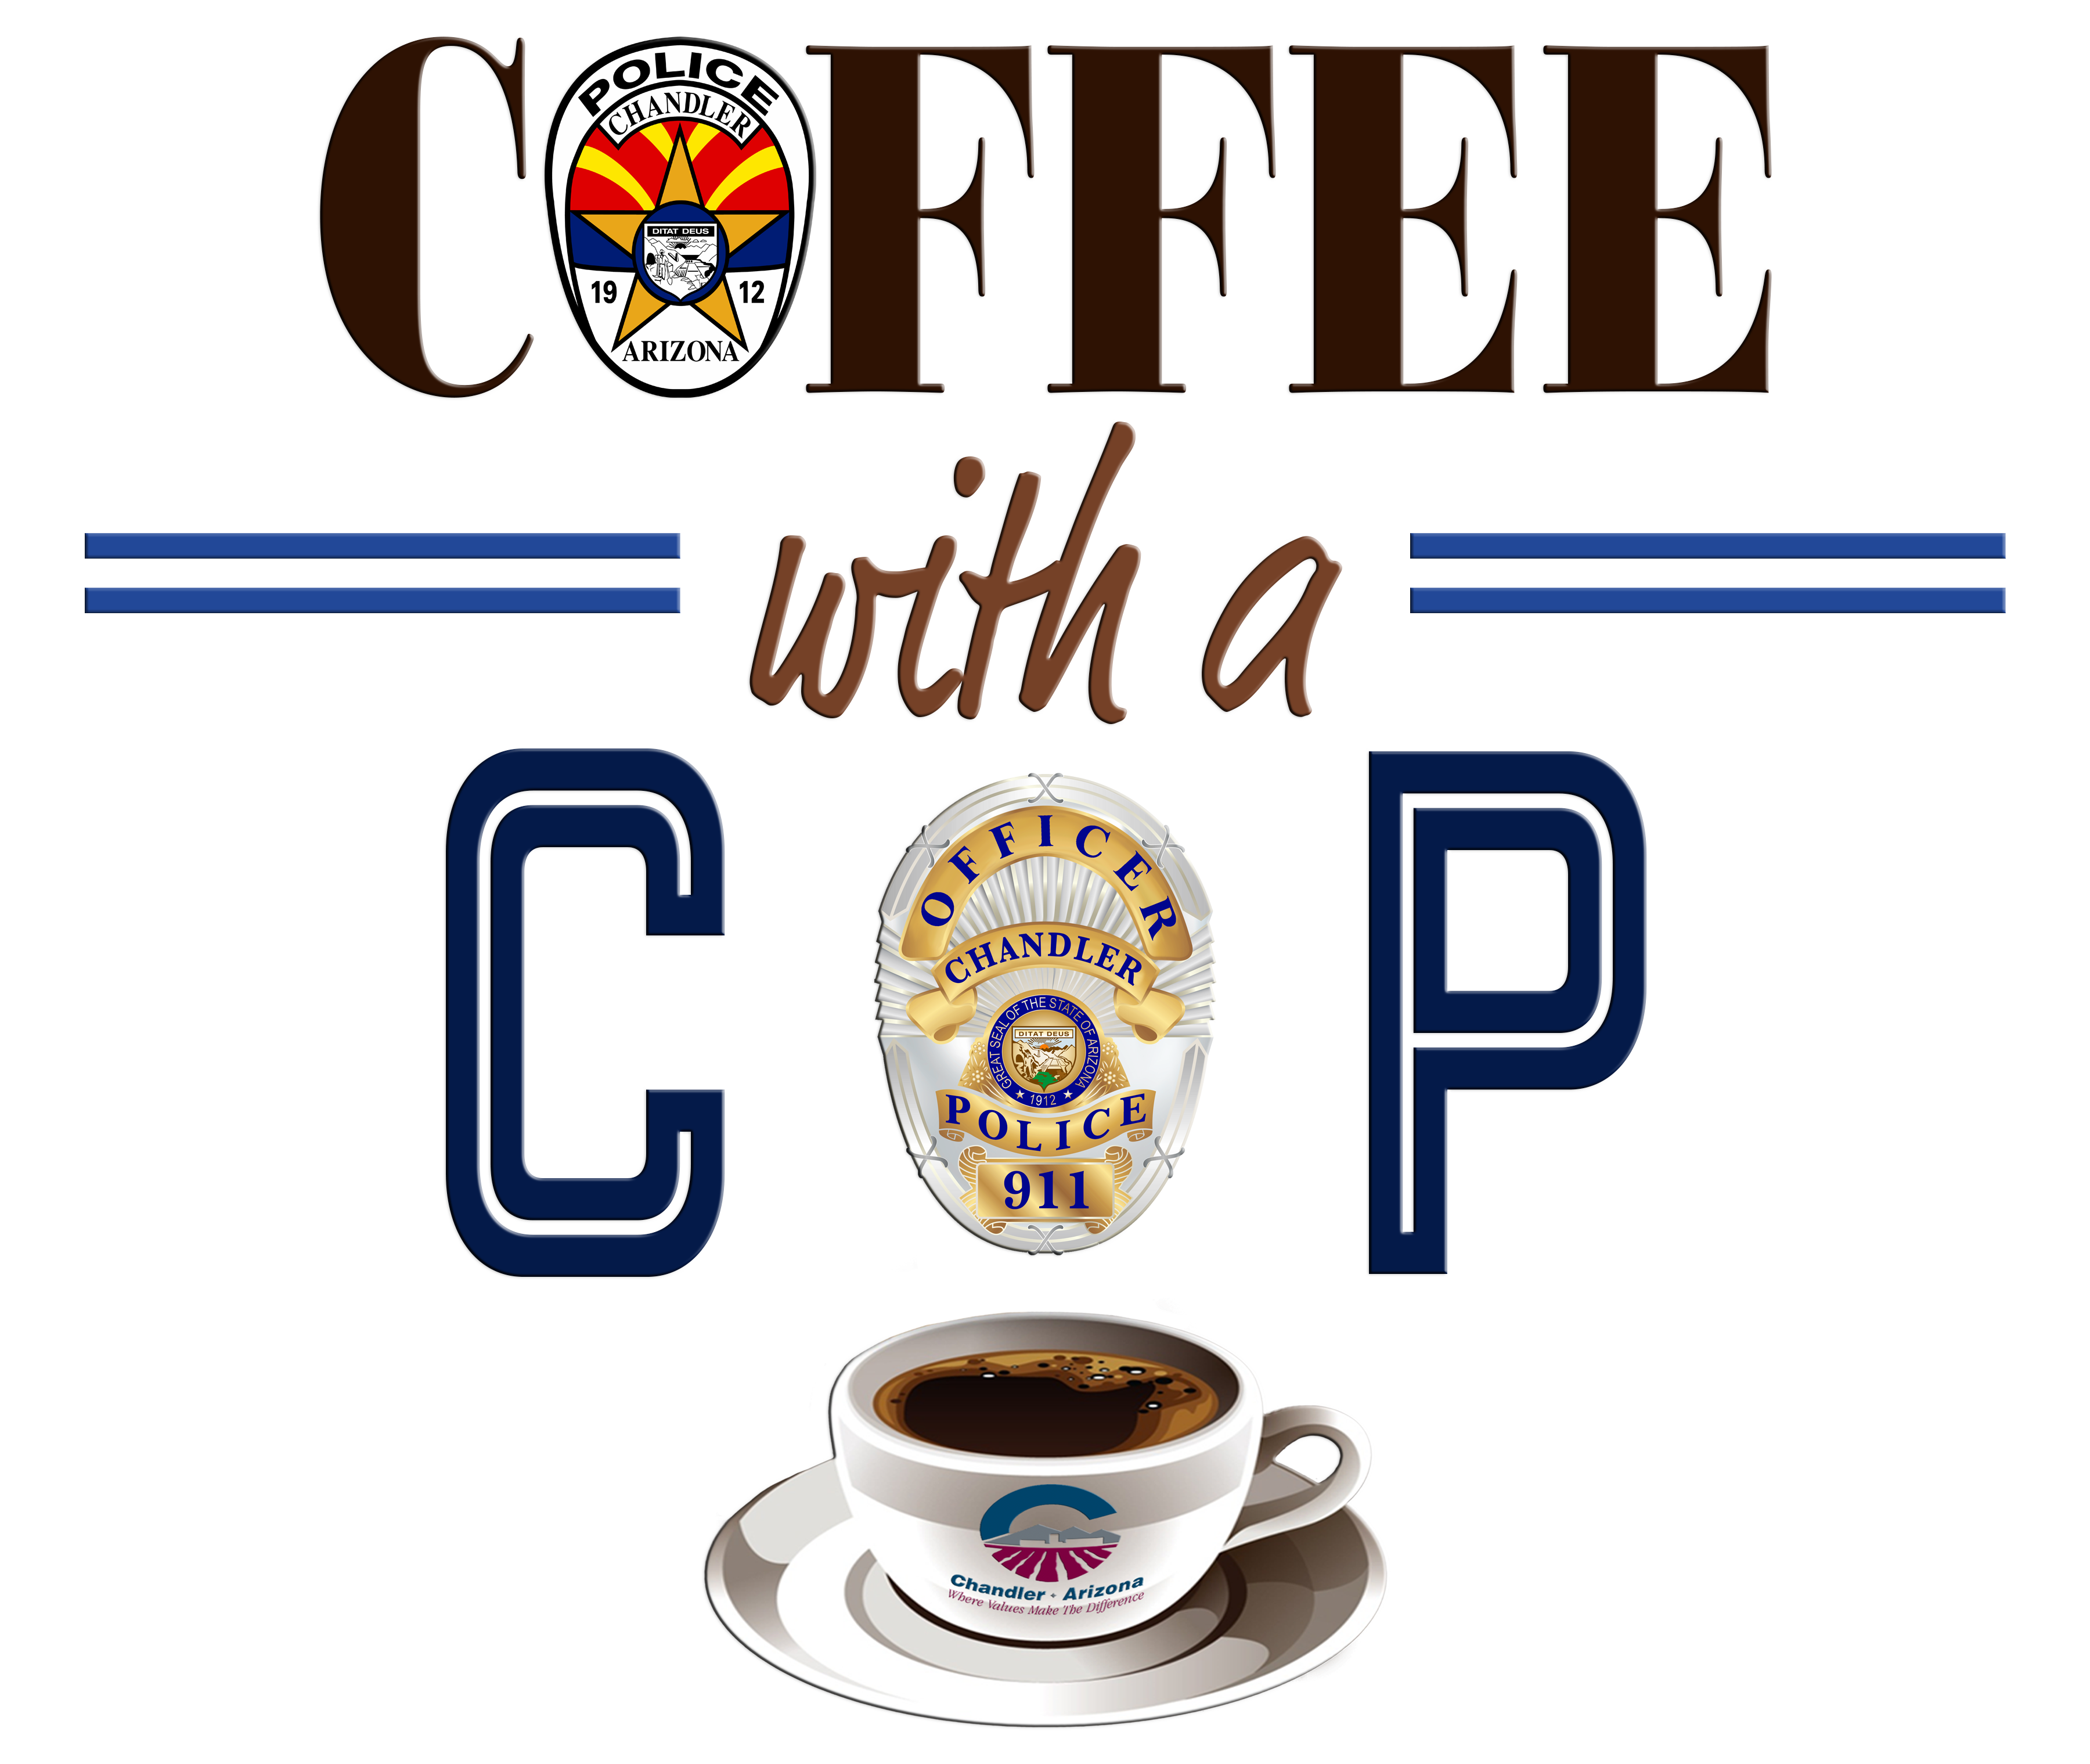 With a cop chandler. Clipart coffee bread